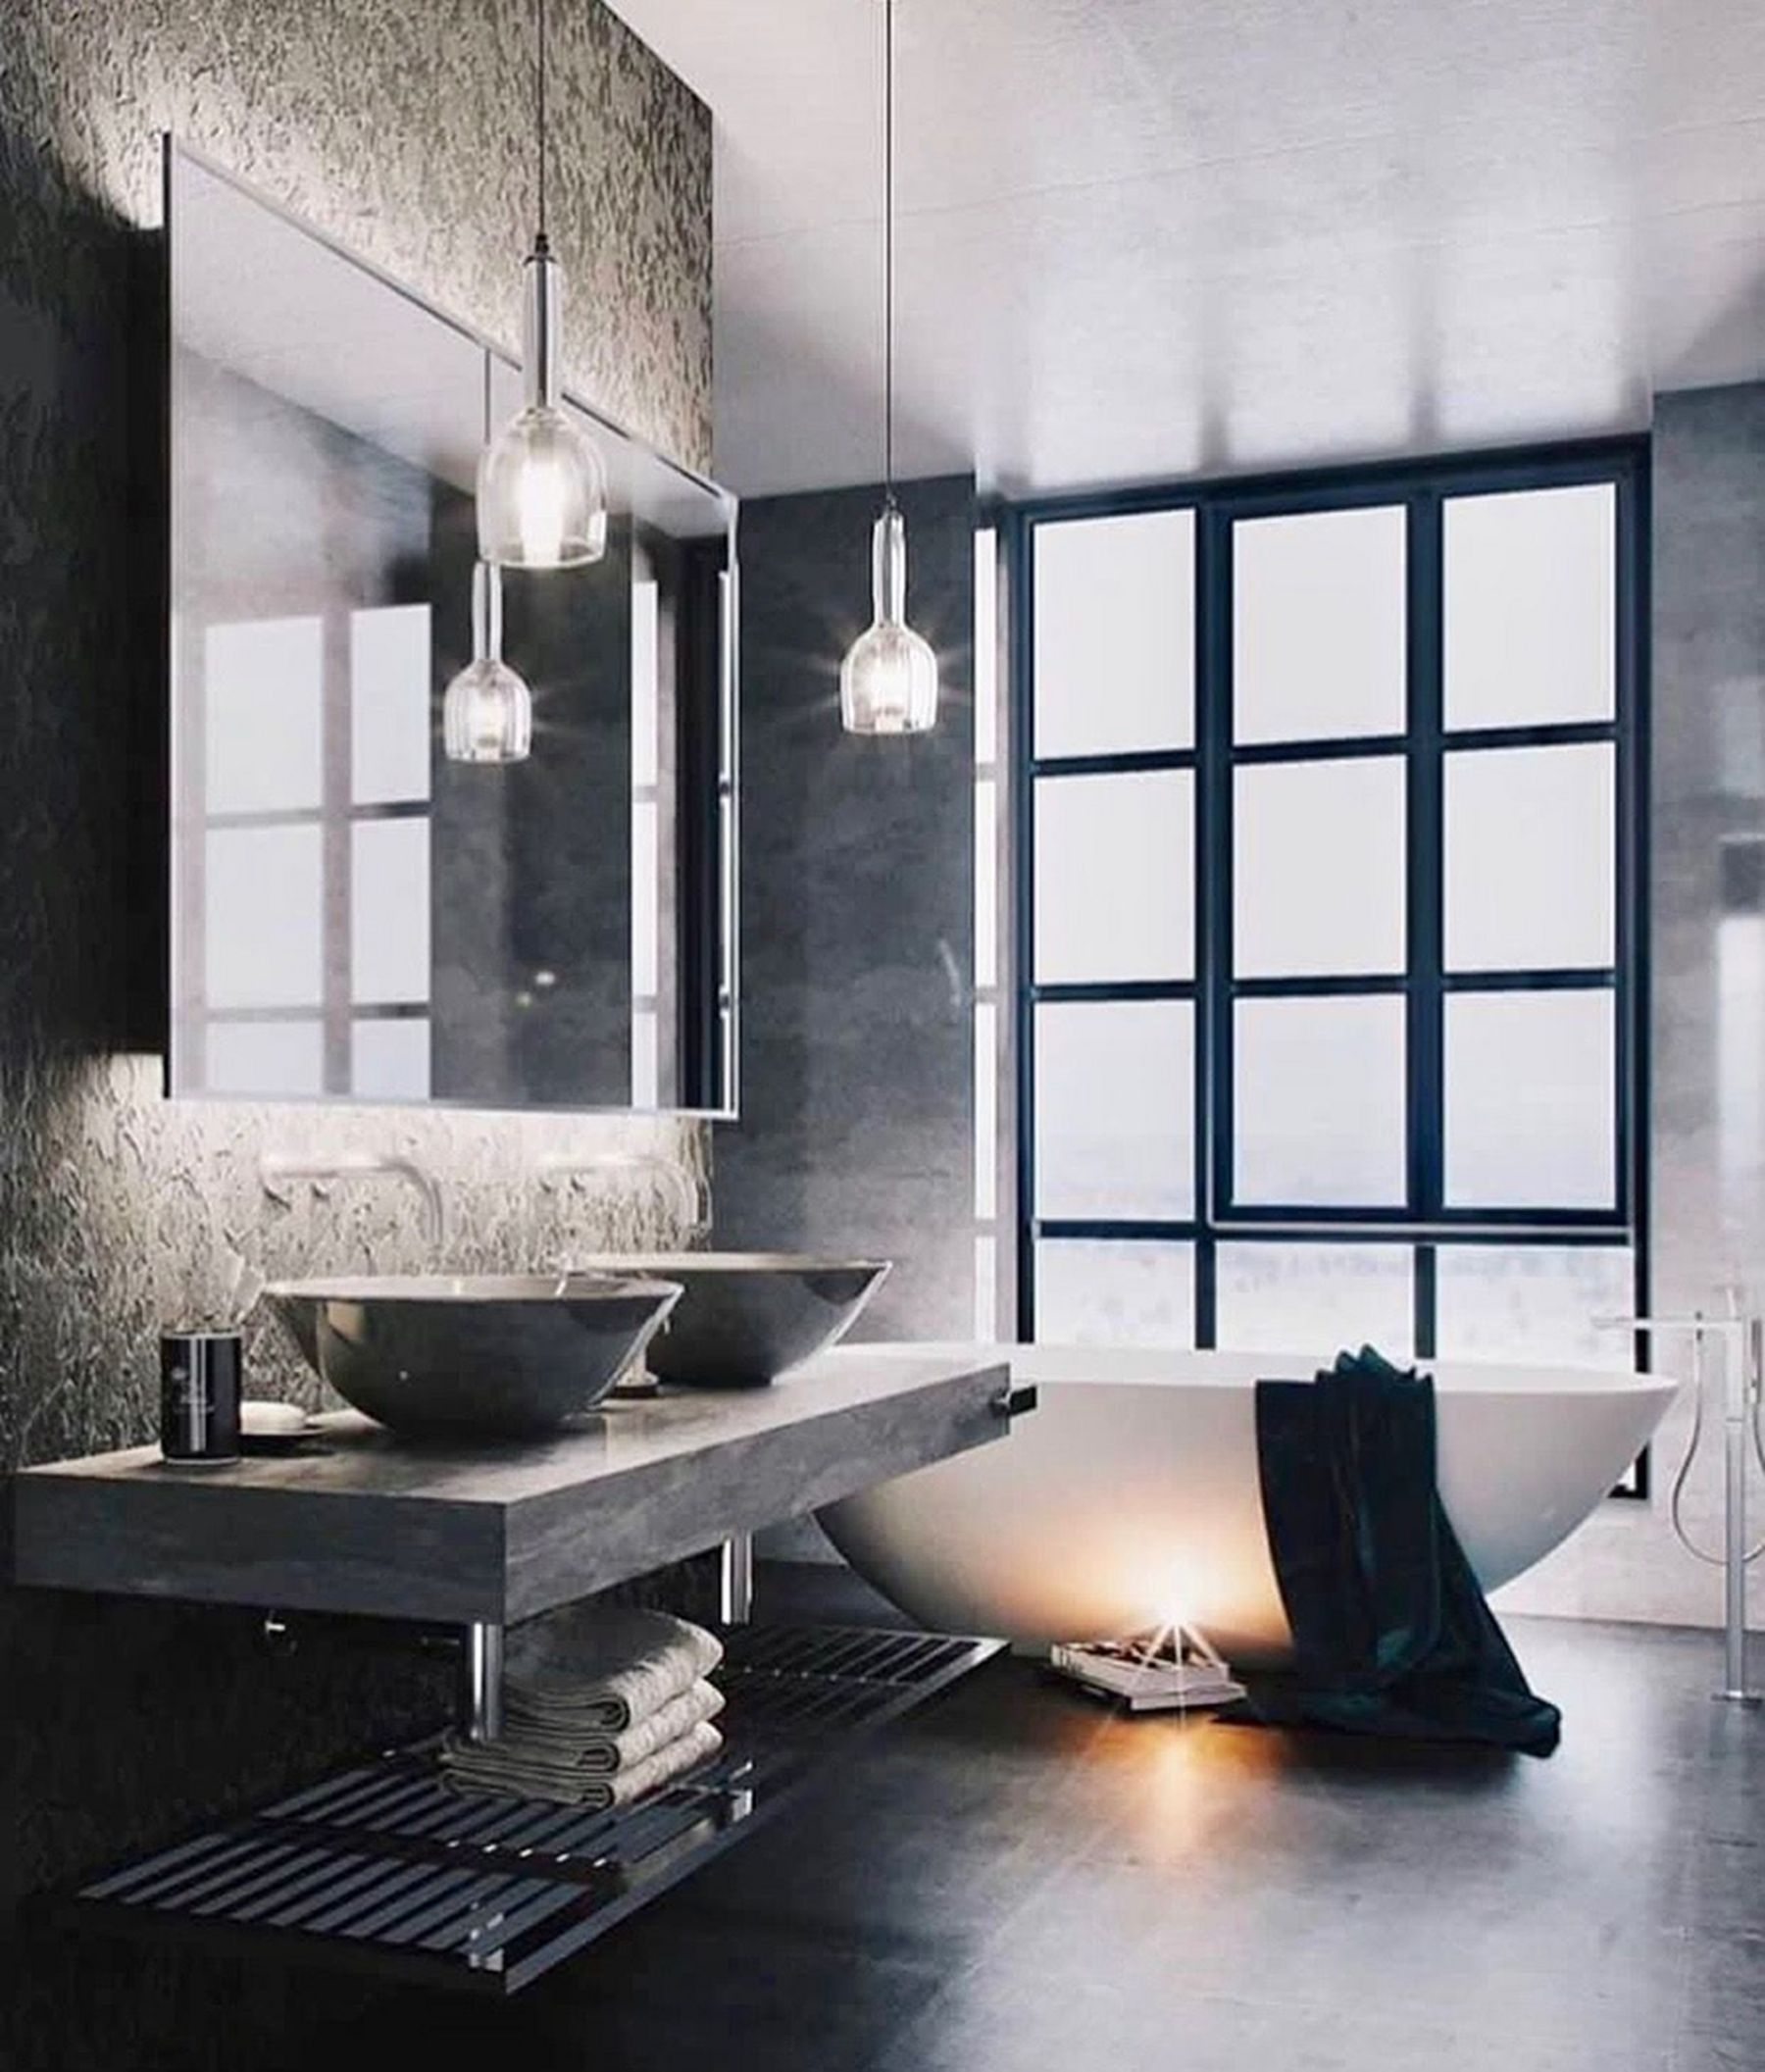 15 Bathroom Design Ideas With Unique And Amazing Industrial Style Industrial Style Bathroom Bathroom Industrial Chic Minimalism Interior